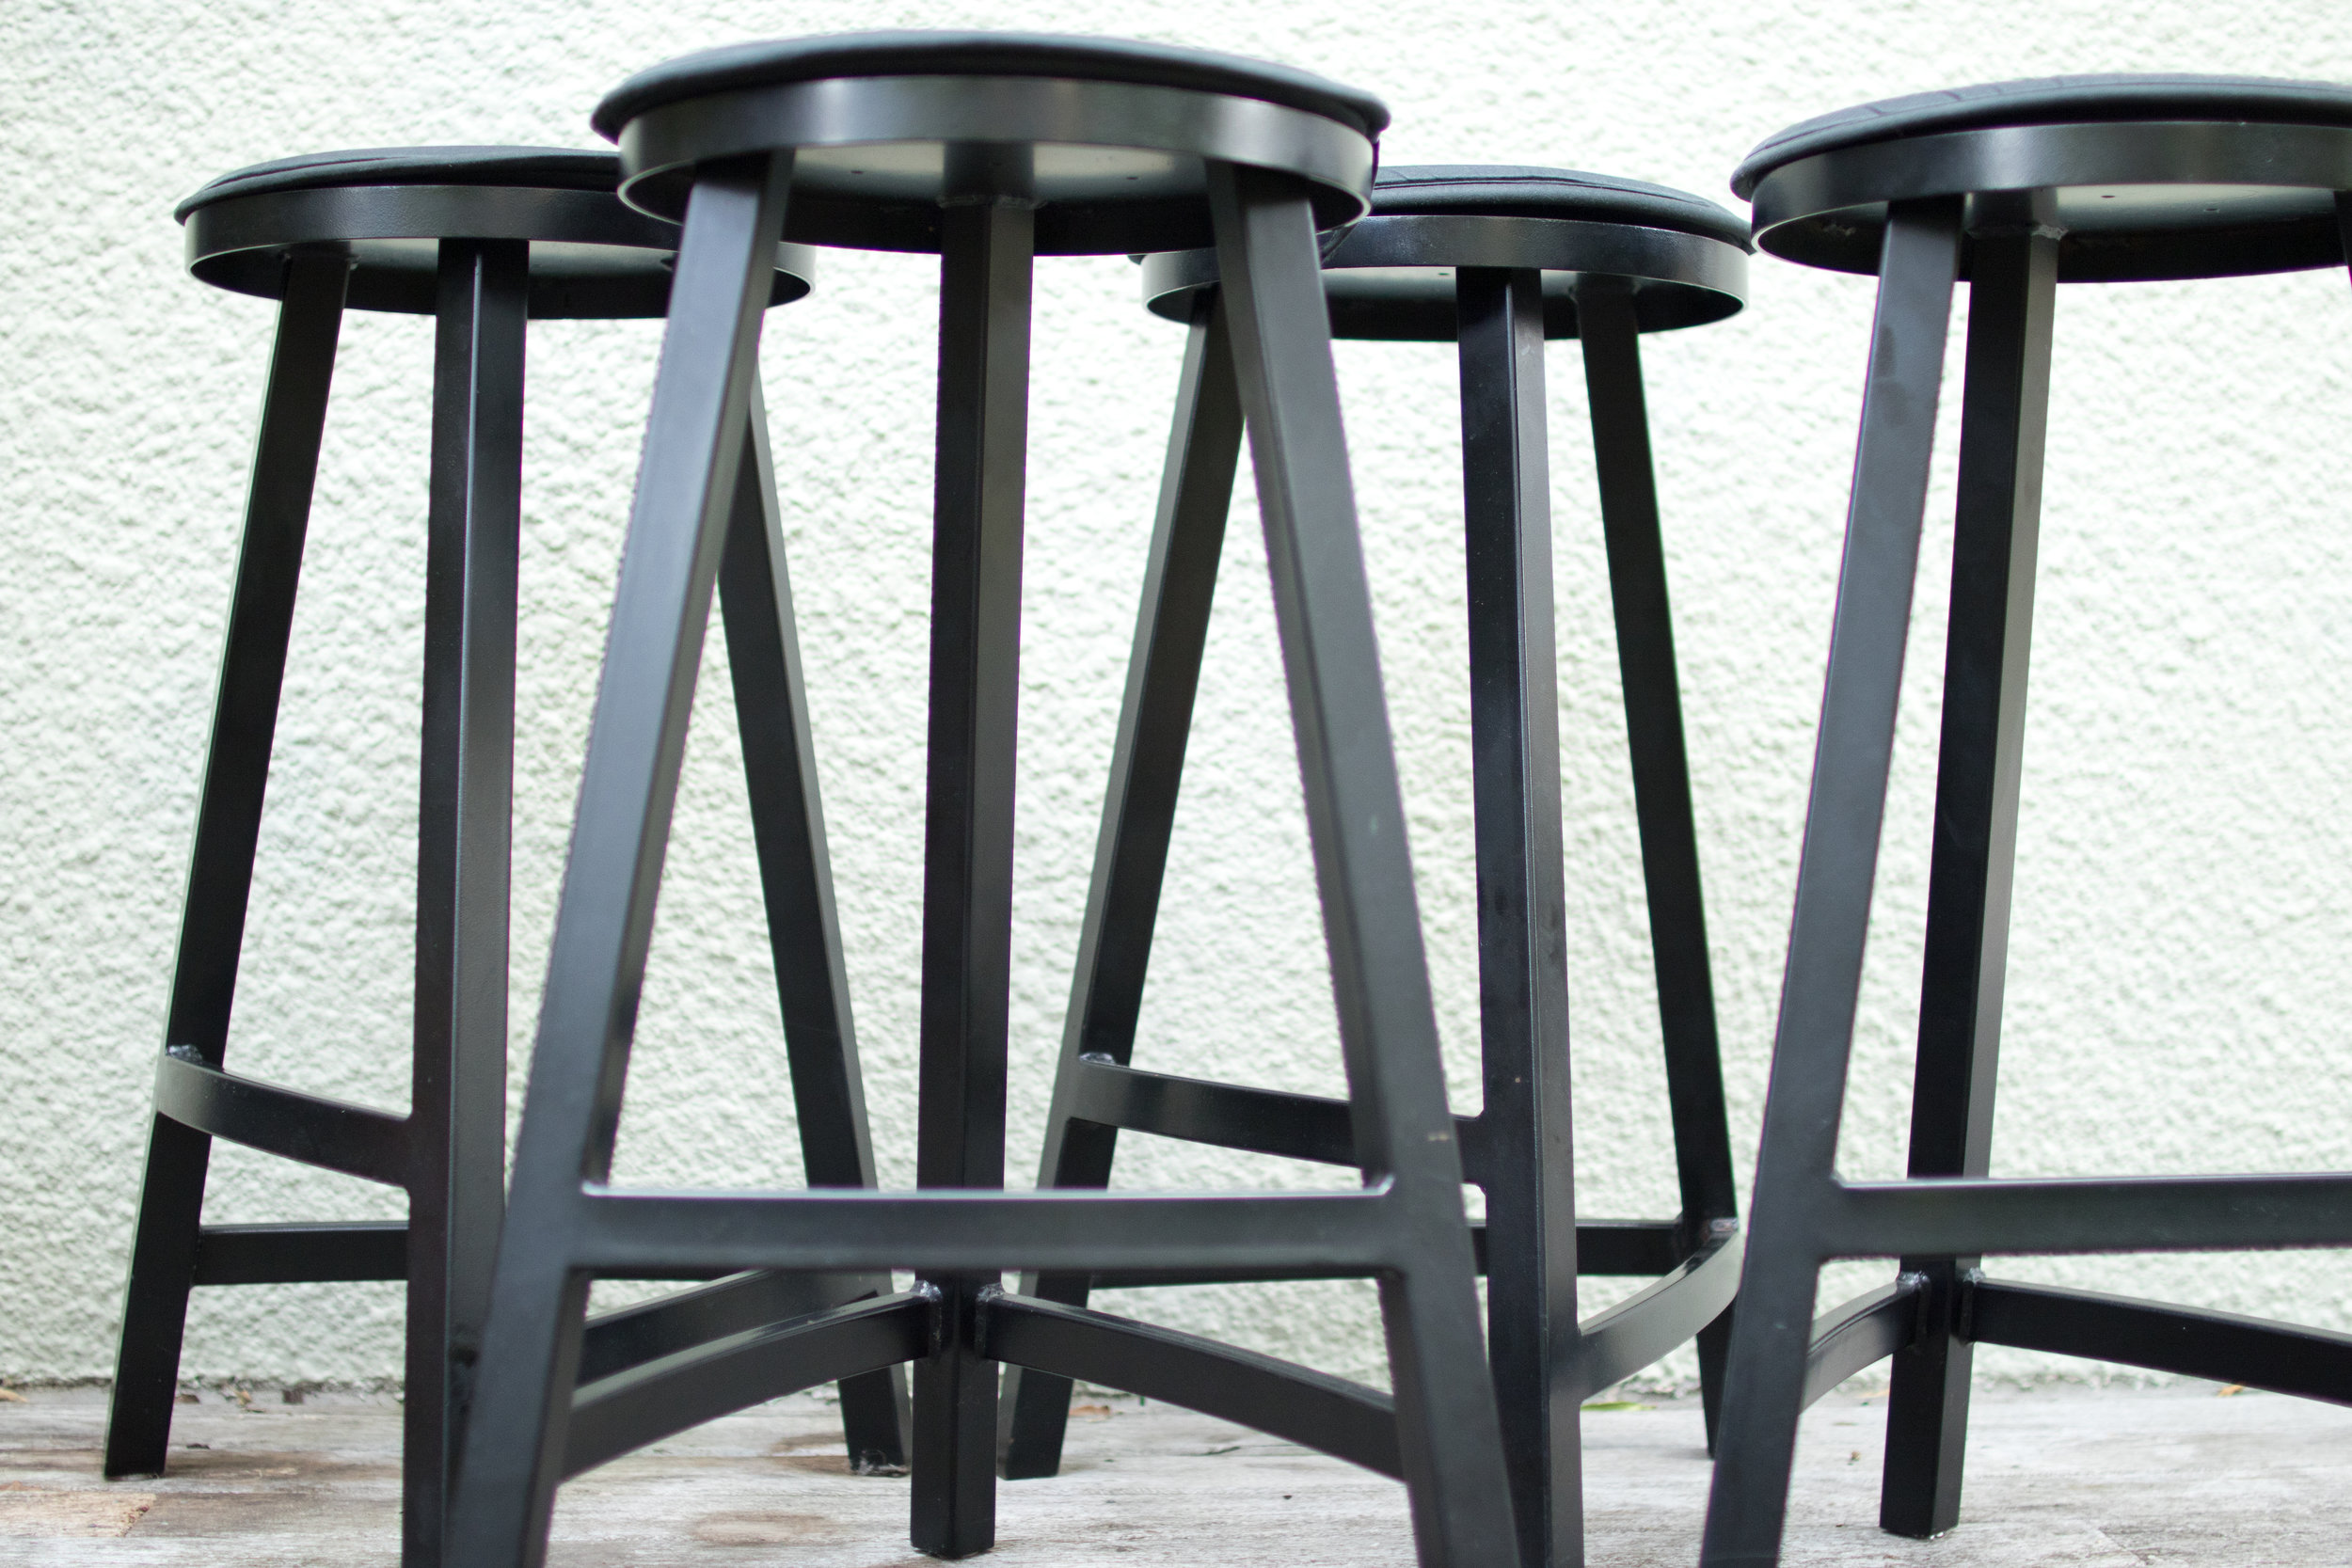 Stool Set - Breakfast bar stools.